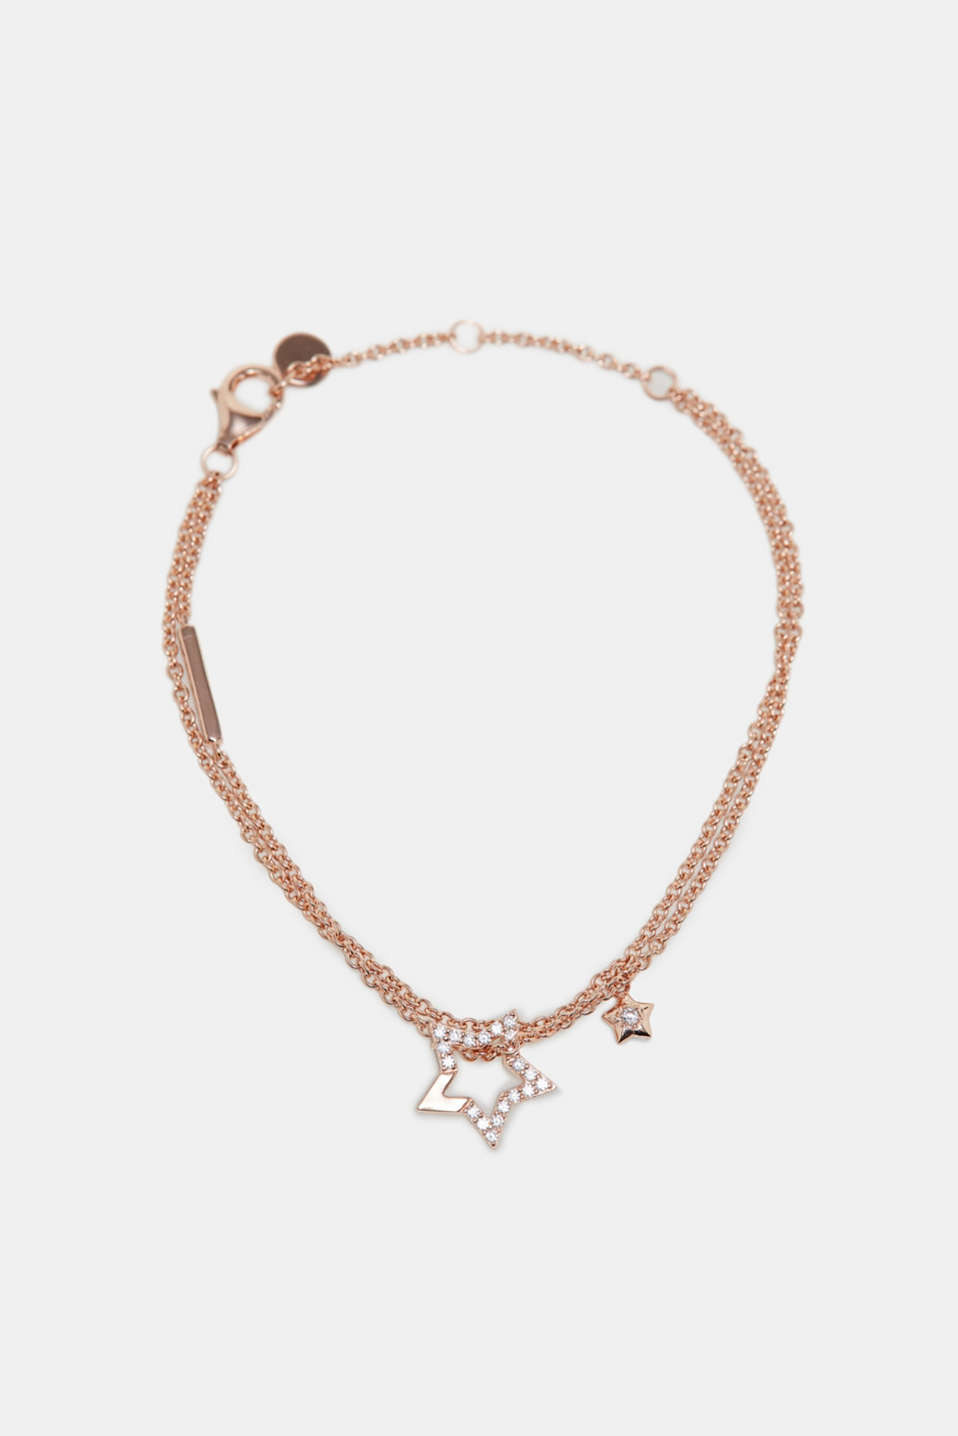 Esprit - Bracelet with a star pendant, sterling silver